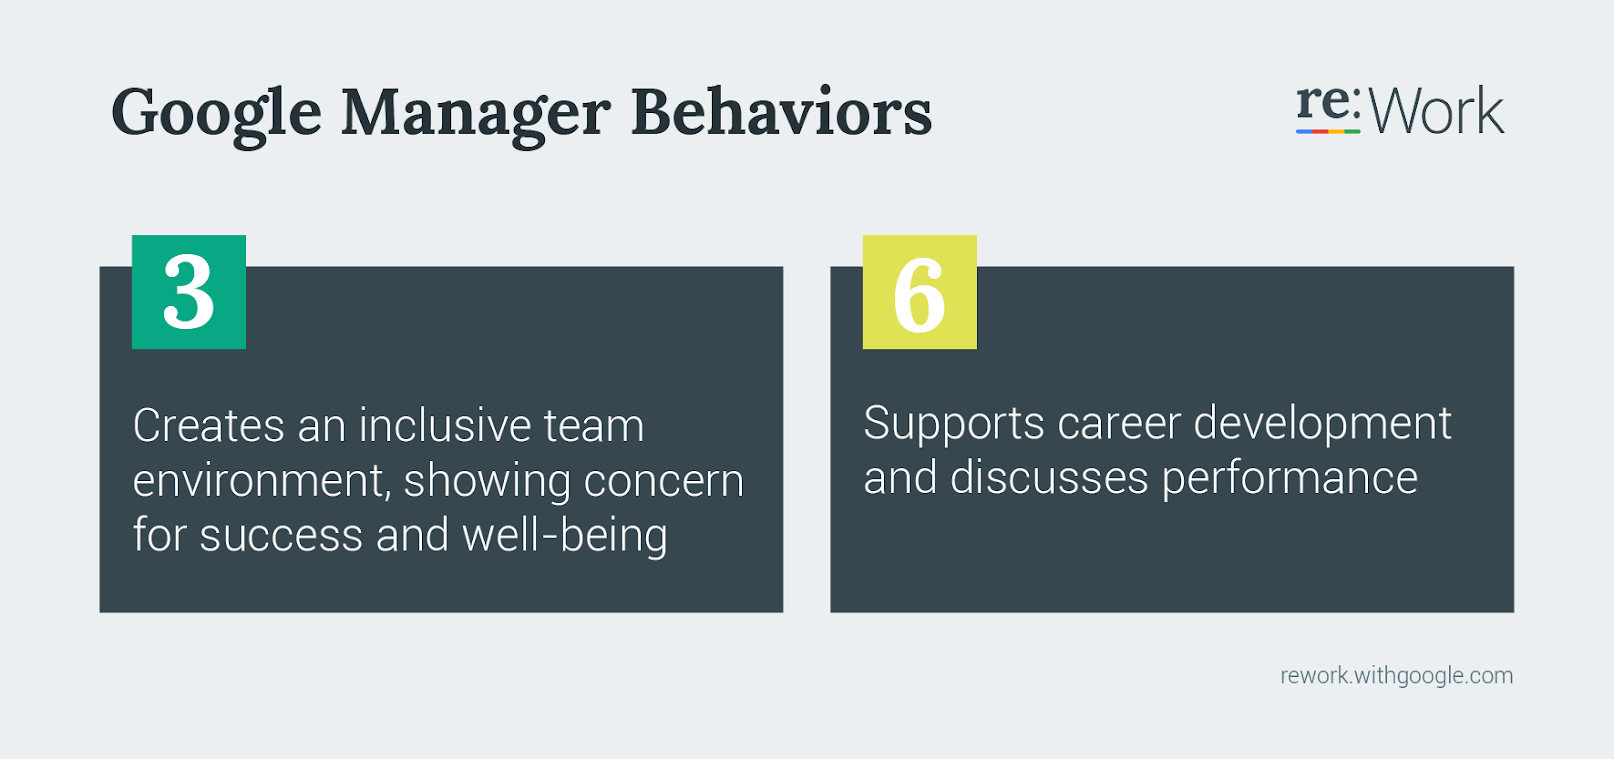 Google Manage Behaviors 3 Creates an inclusive team environment, showing concern for success and well-being. 6 Supports career development and discusses performance.